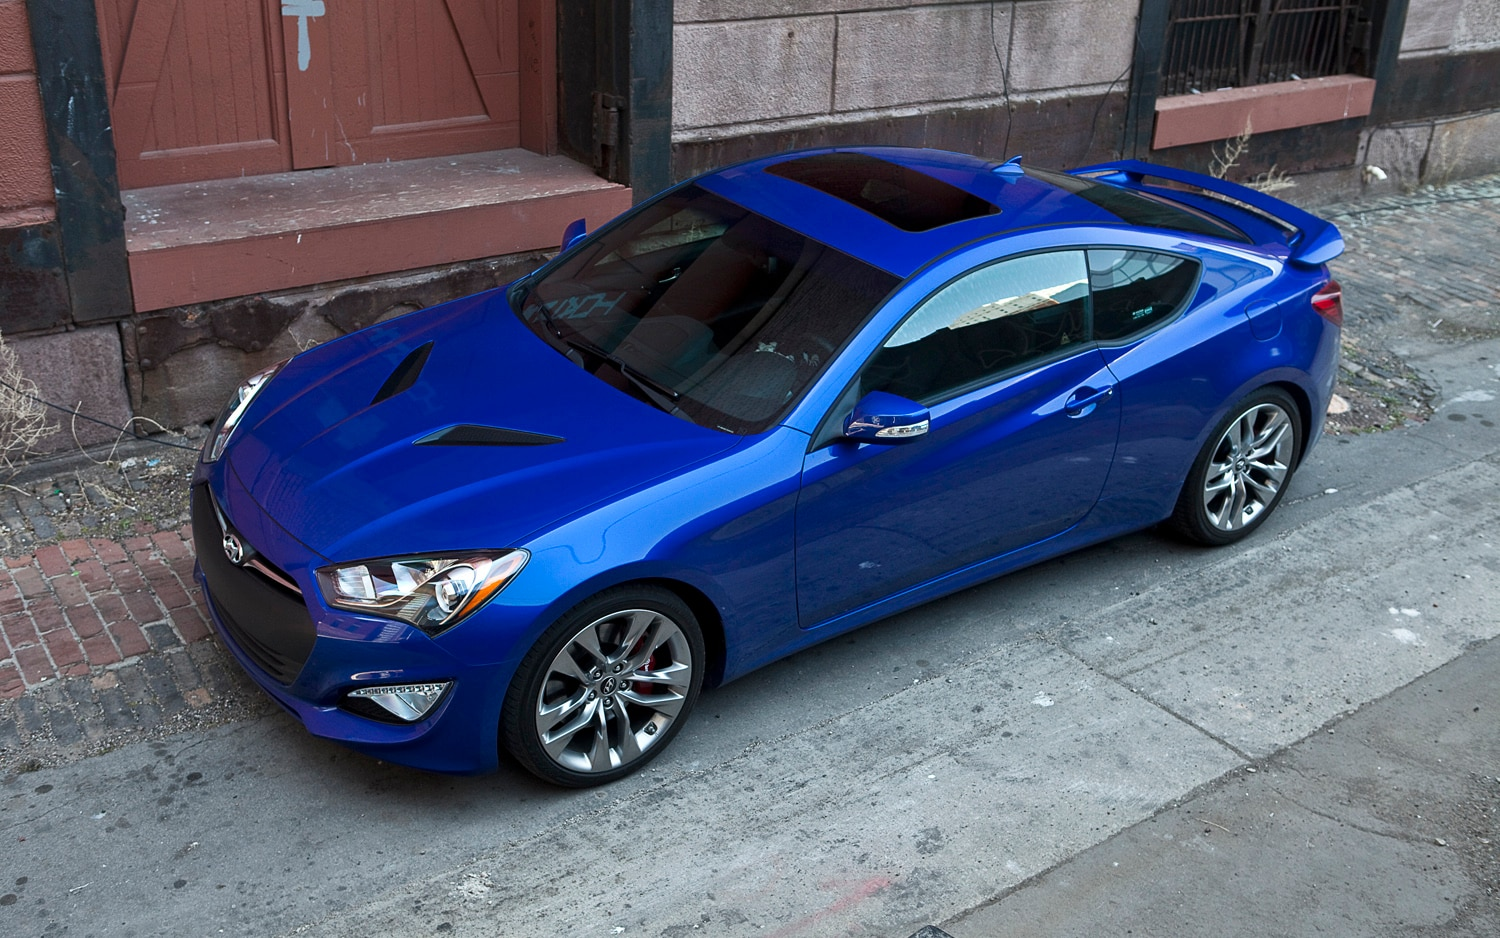 2013 Hyundai Genesis Coupe 3 8 Track AT Front Left Side View1